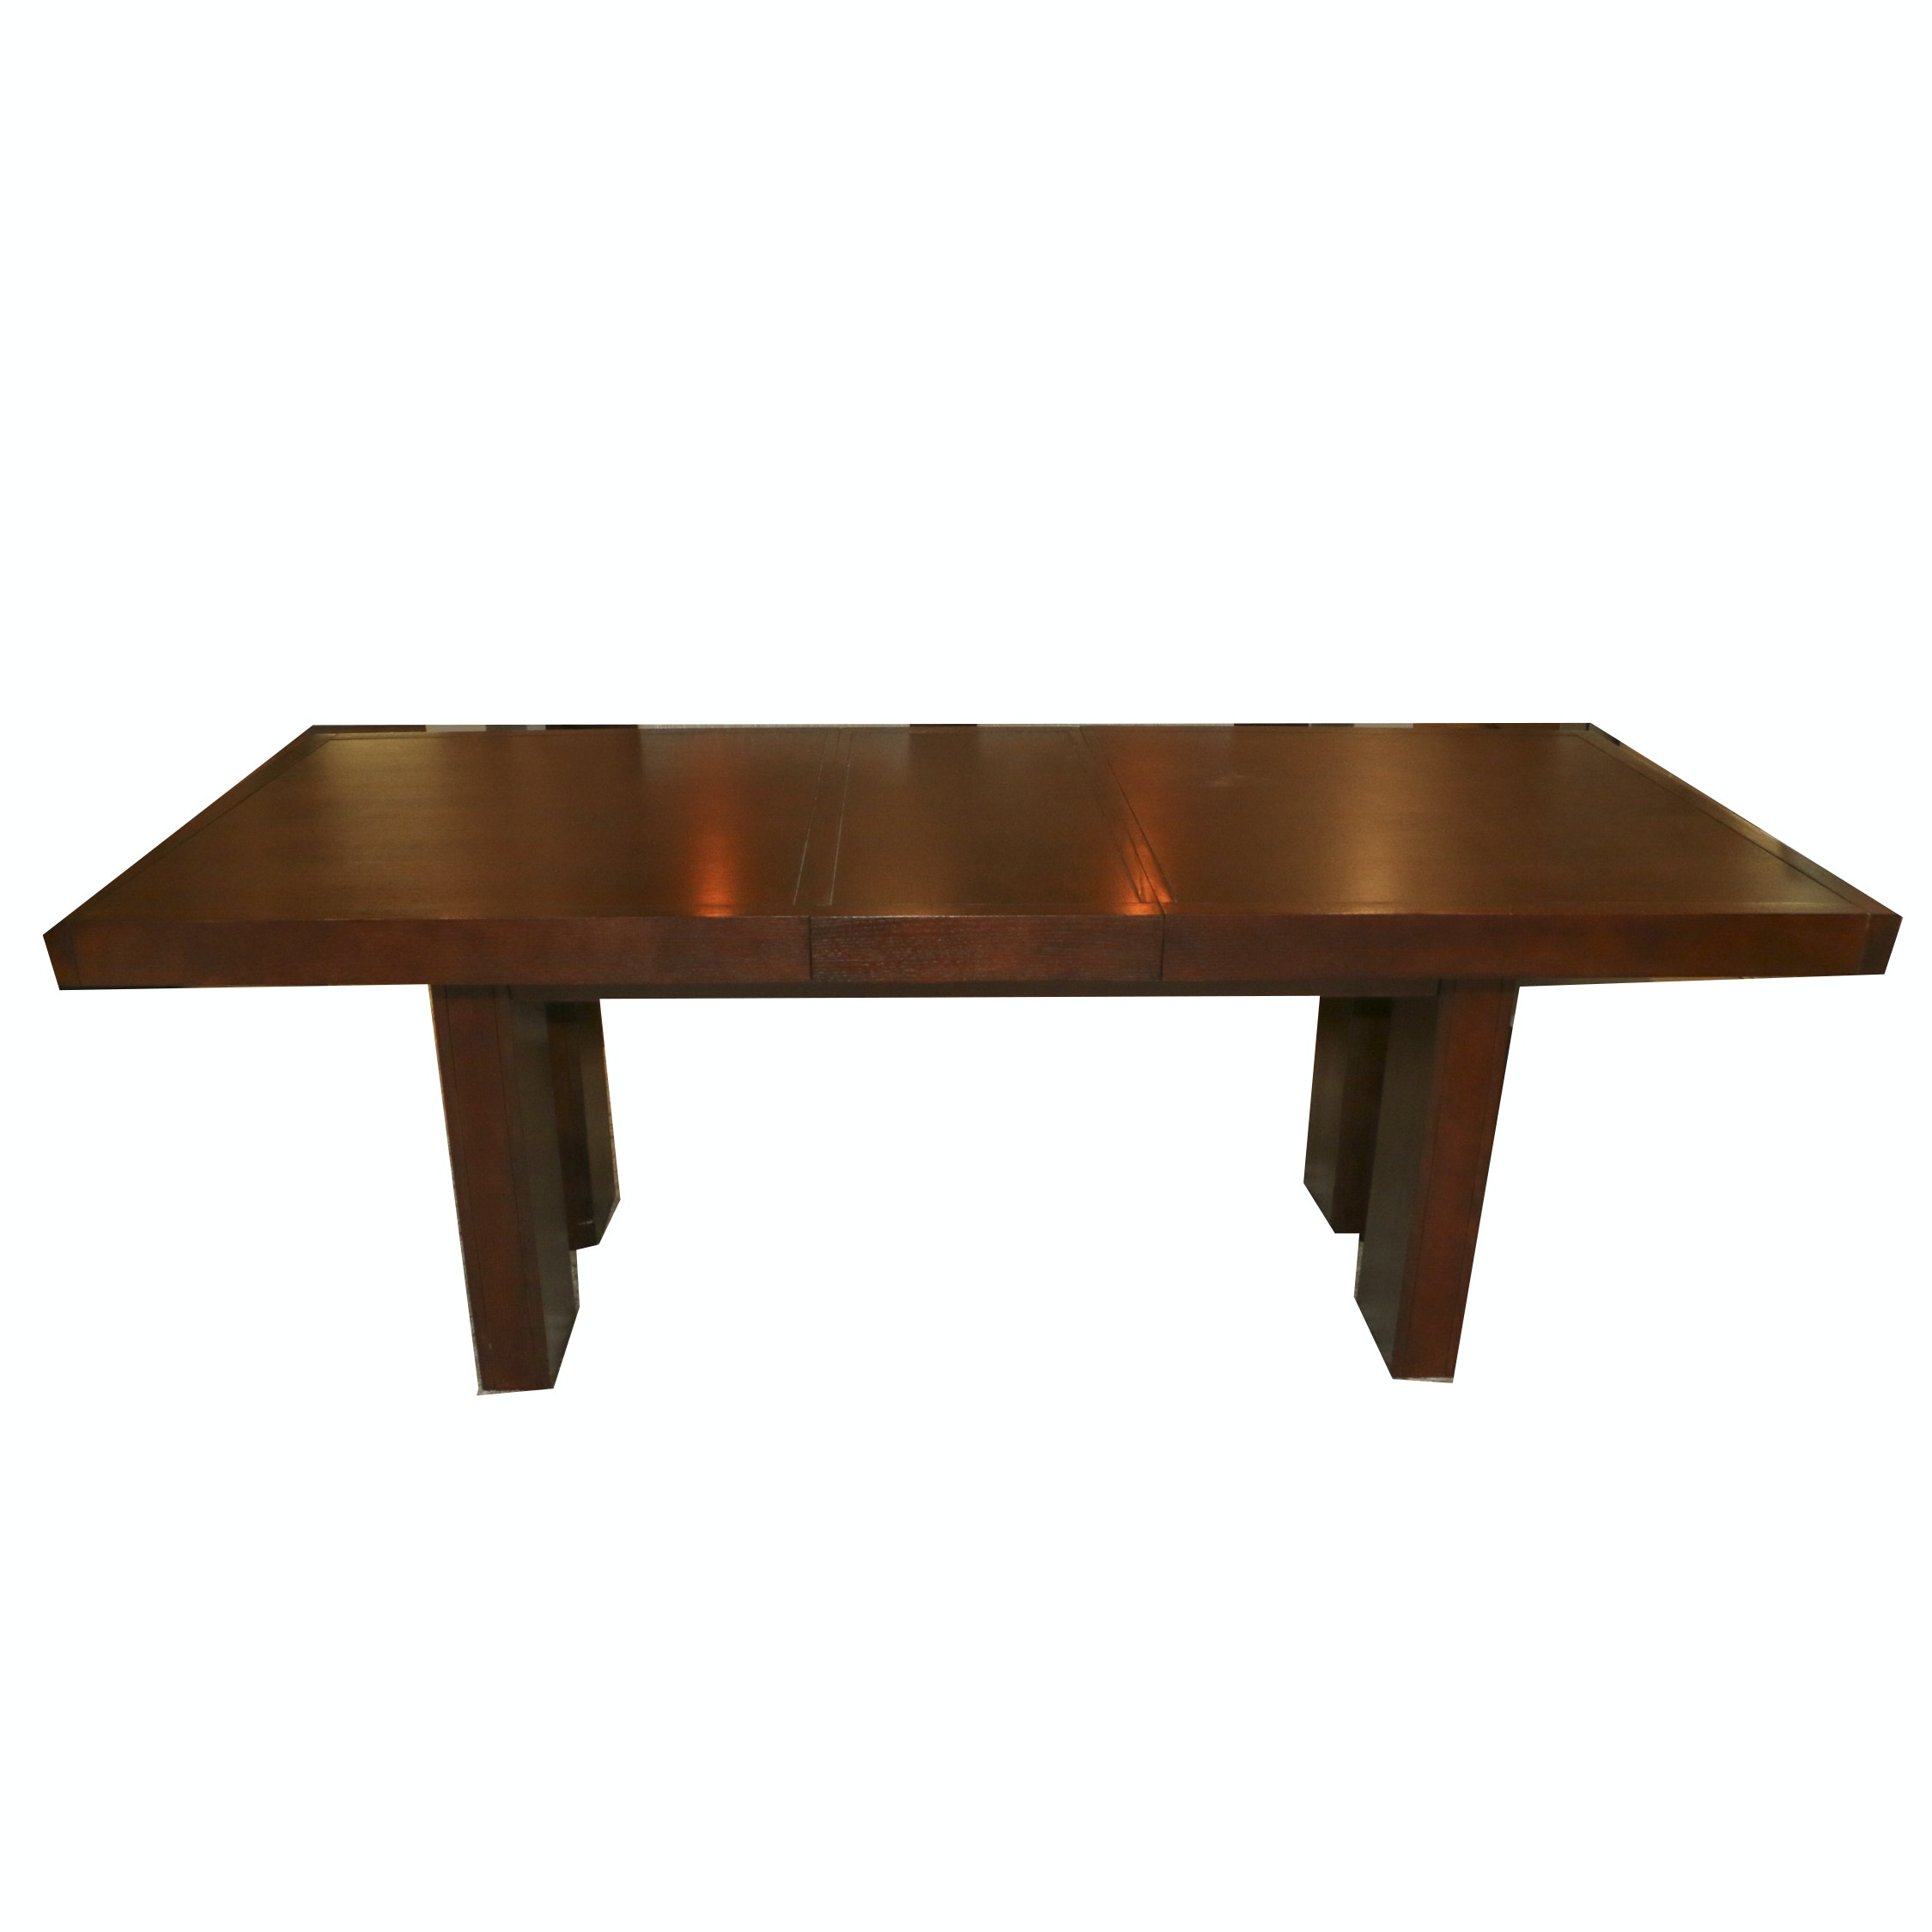 Wooden Dining Table with Extension Leaf, 21st Century